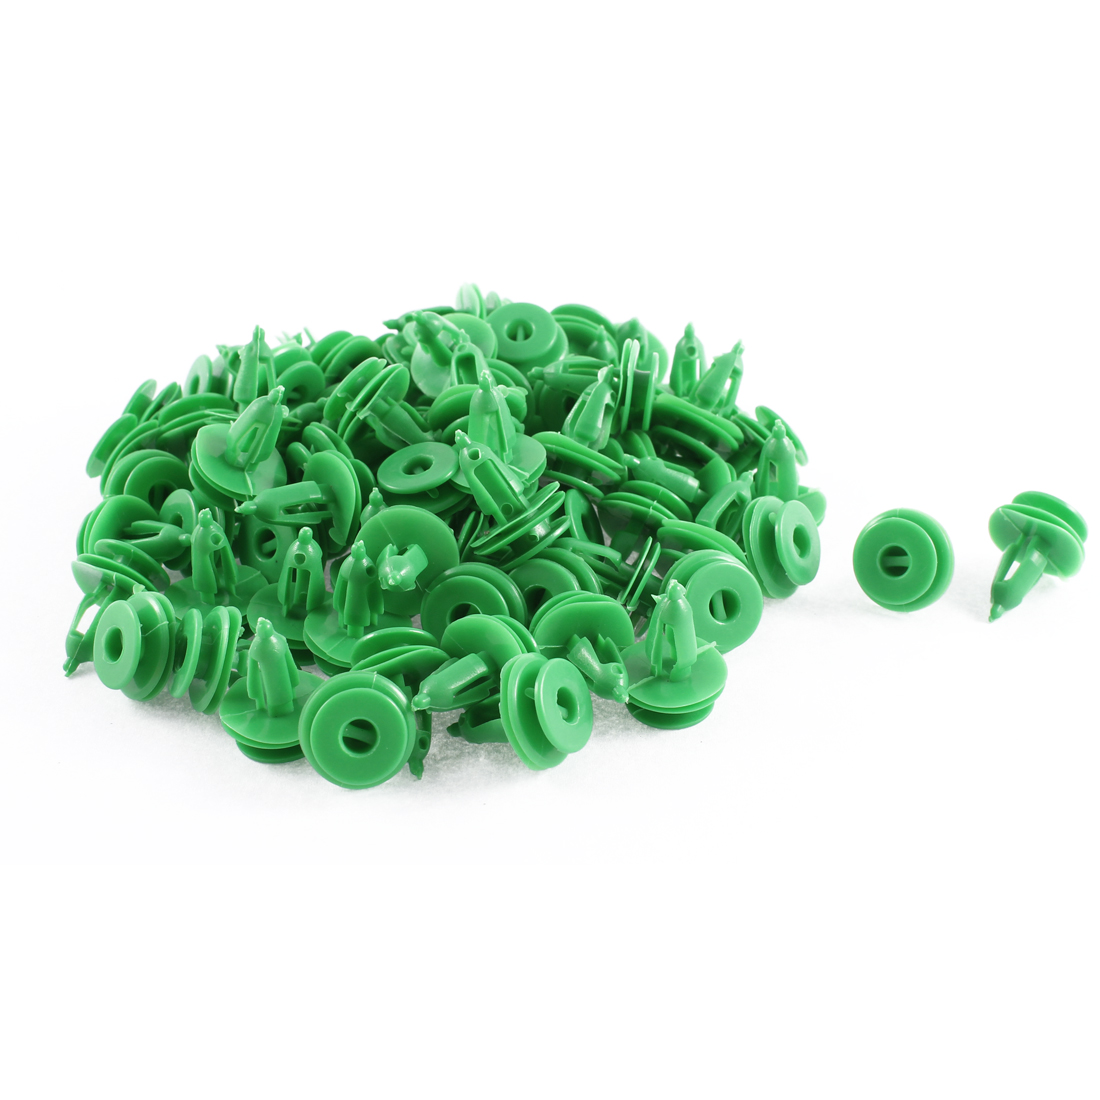 82Pcs Universal Green Splash Guard Moulding Retainers 7 x 17 x 16mm